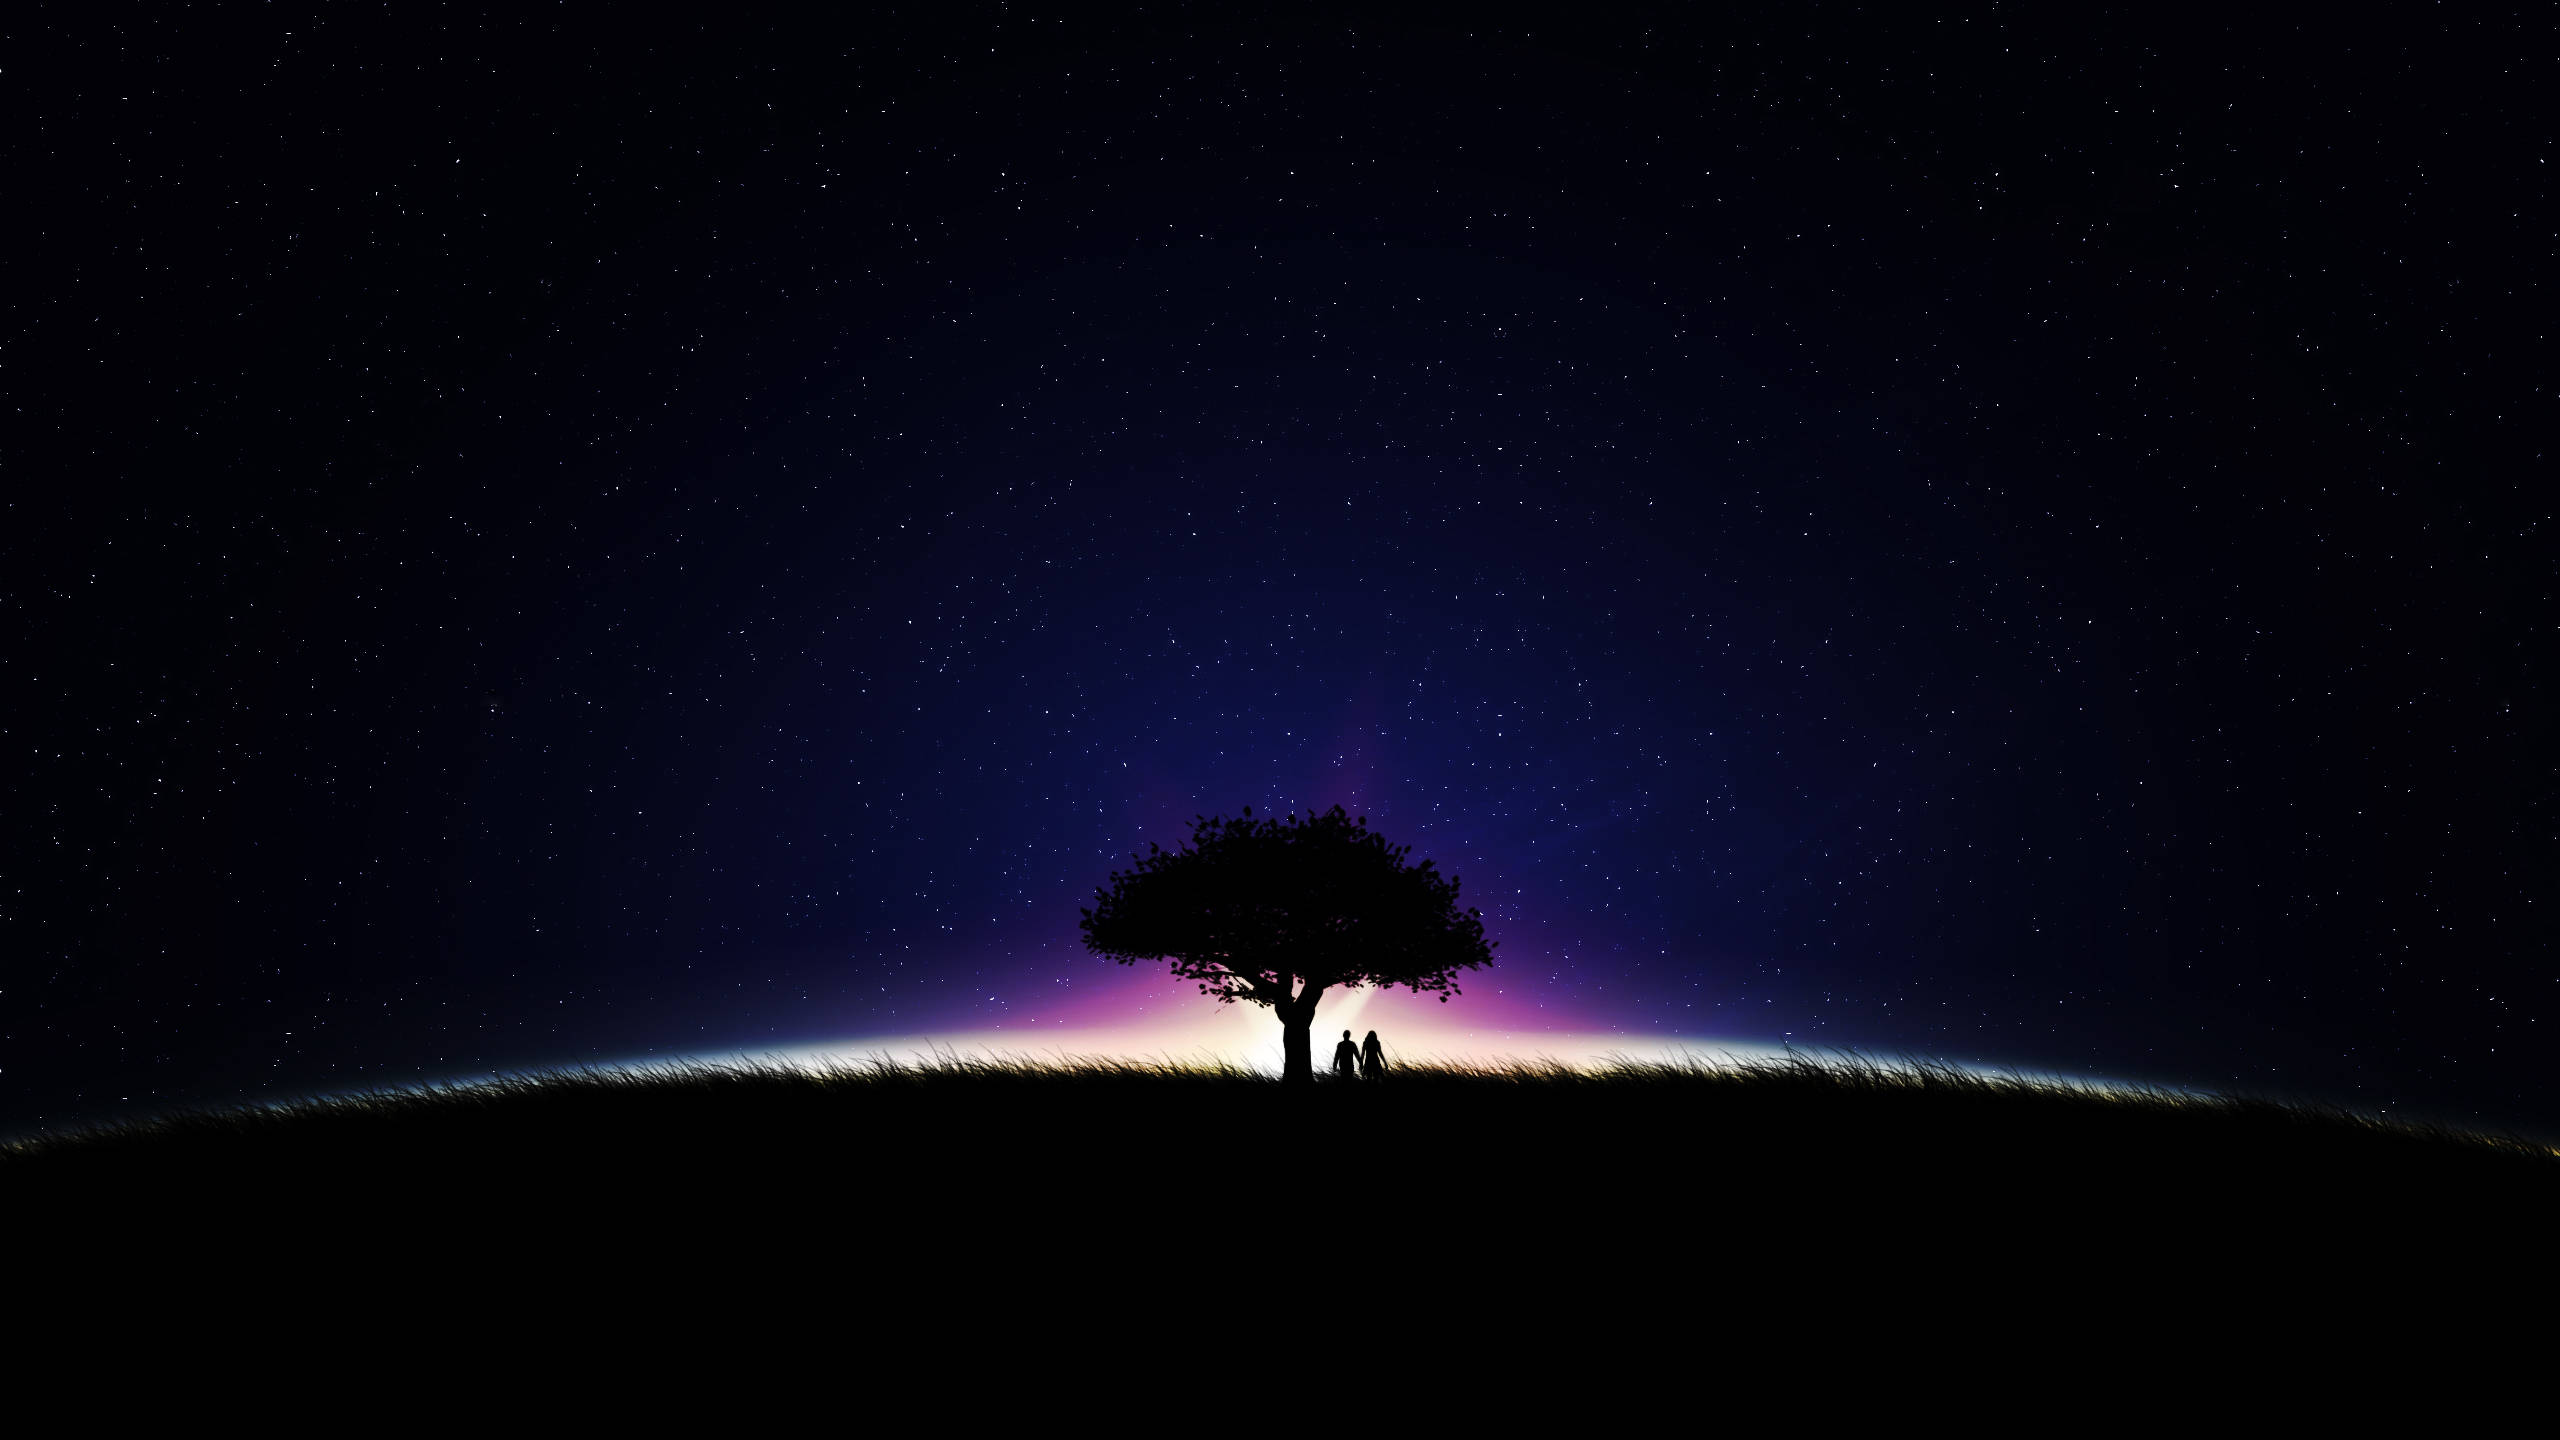 Silhouette 25601440 Wallpaper 902095 2560x1440